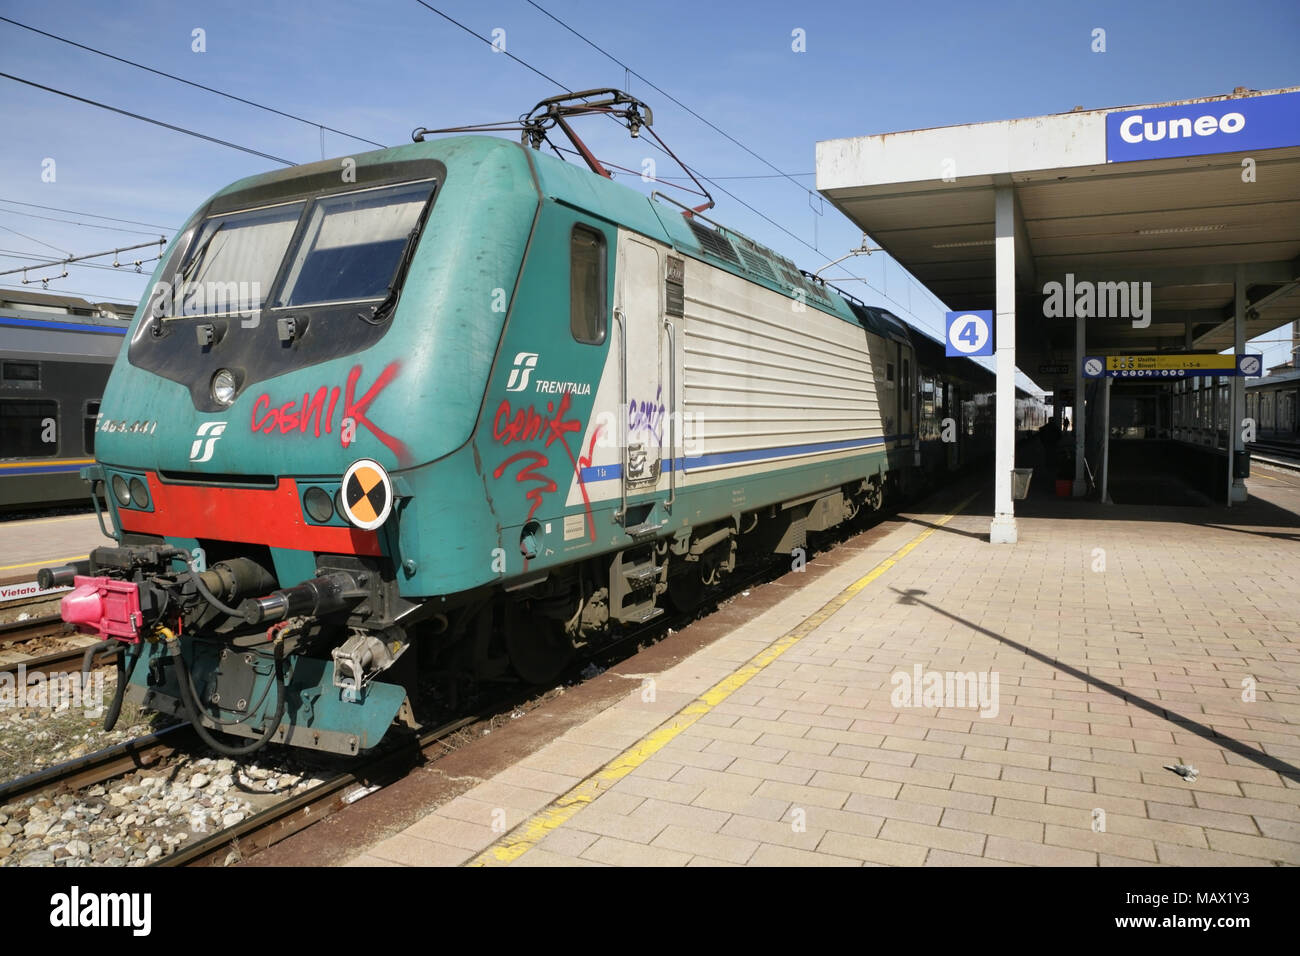 Italian railways class 464 electric locomotive waiting at Cuneo station. -  Stock Image